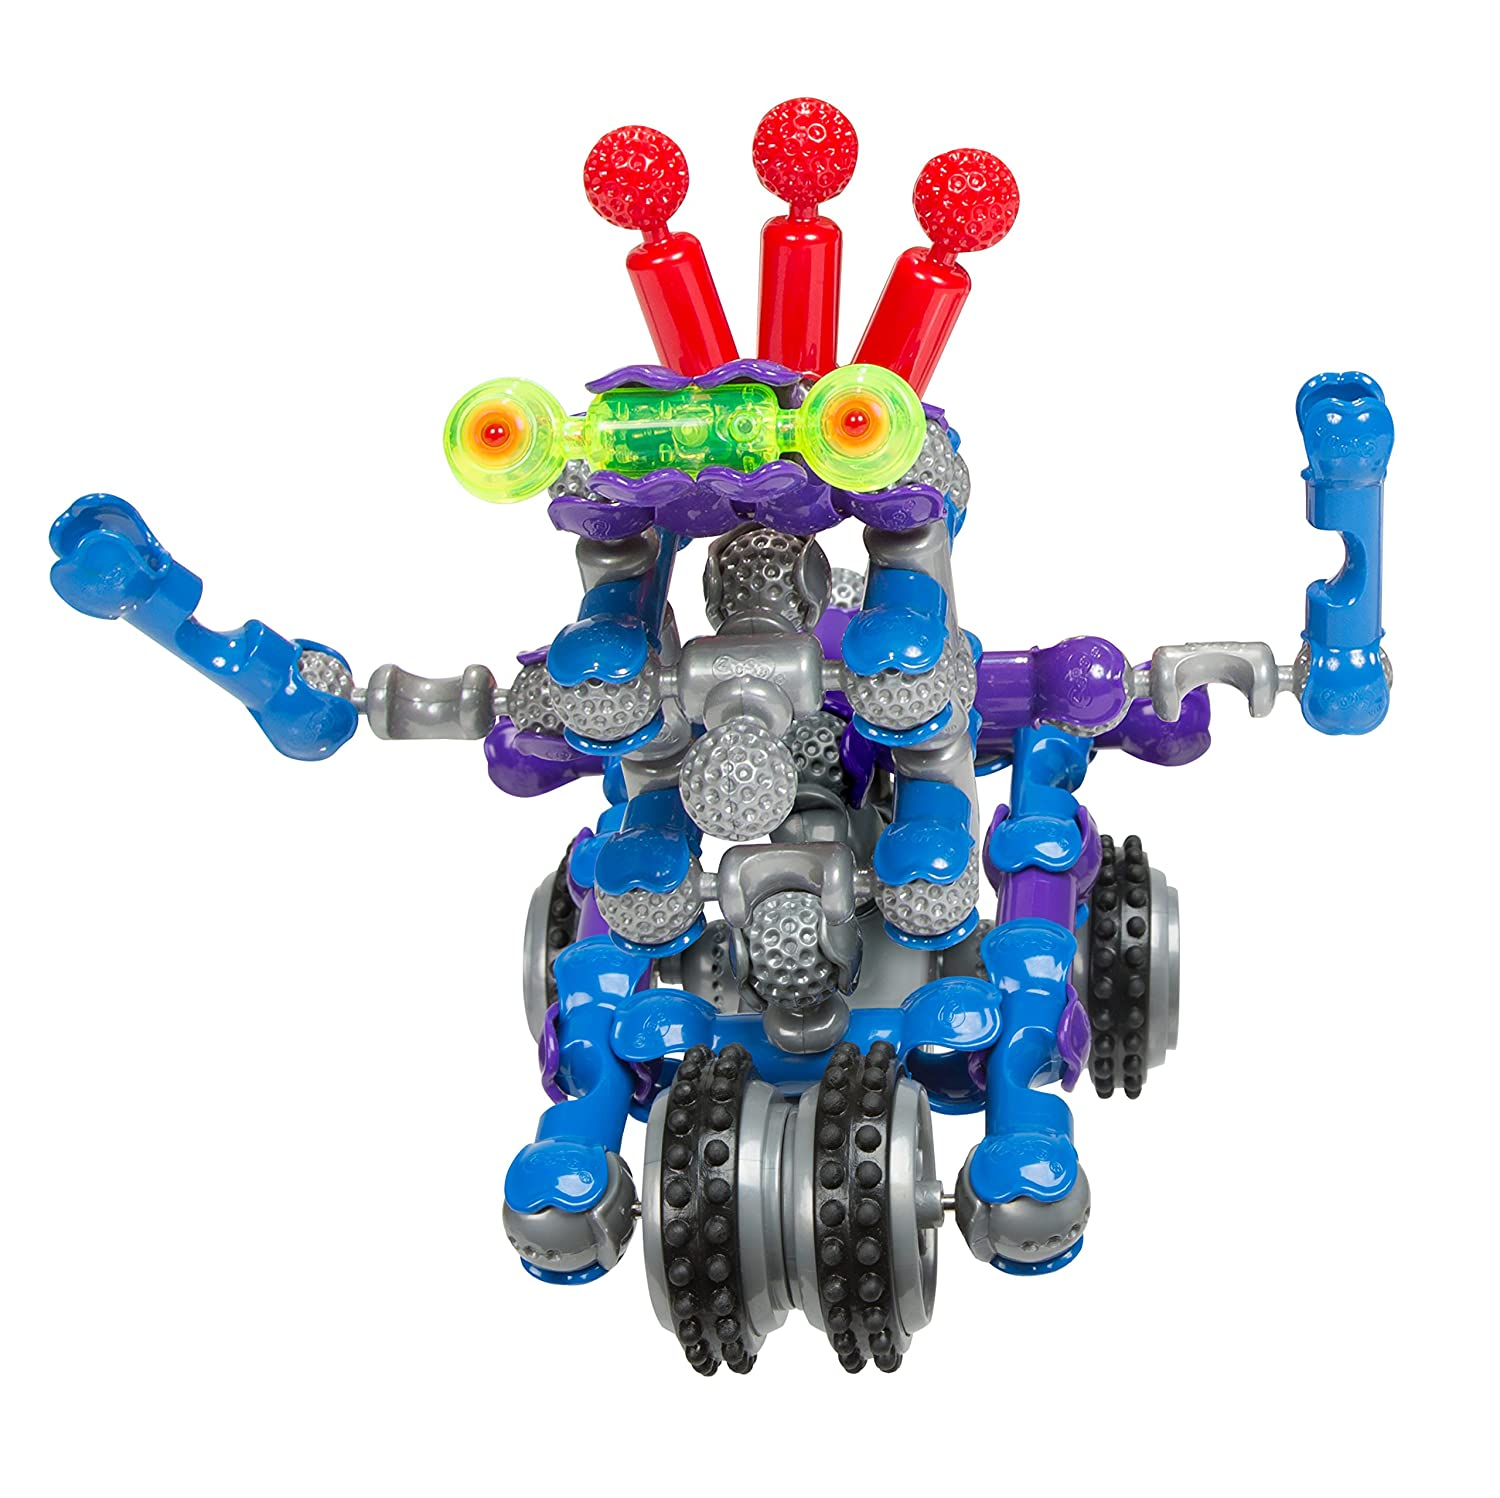 Amazon ZOOB BuilderZ ZOOB Bot Toys & Games